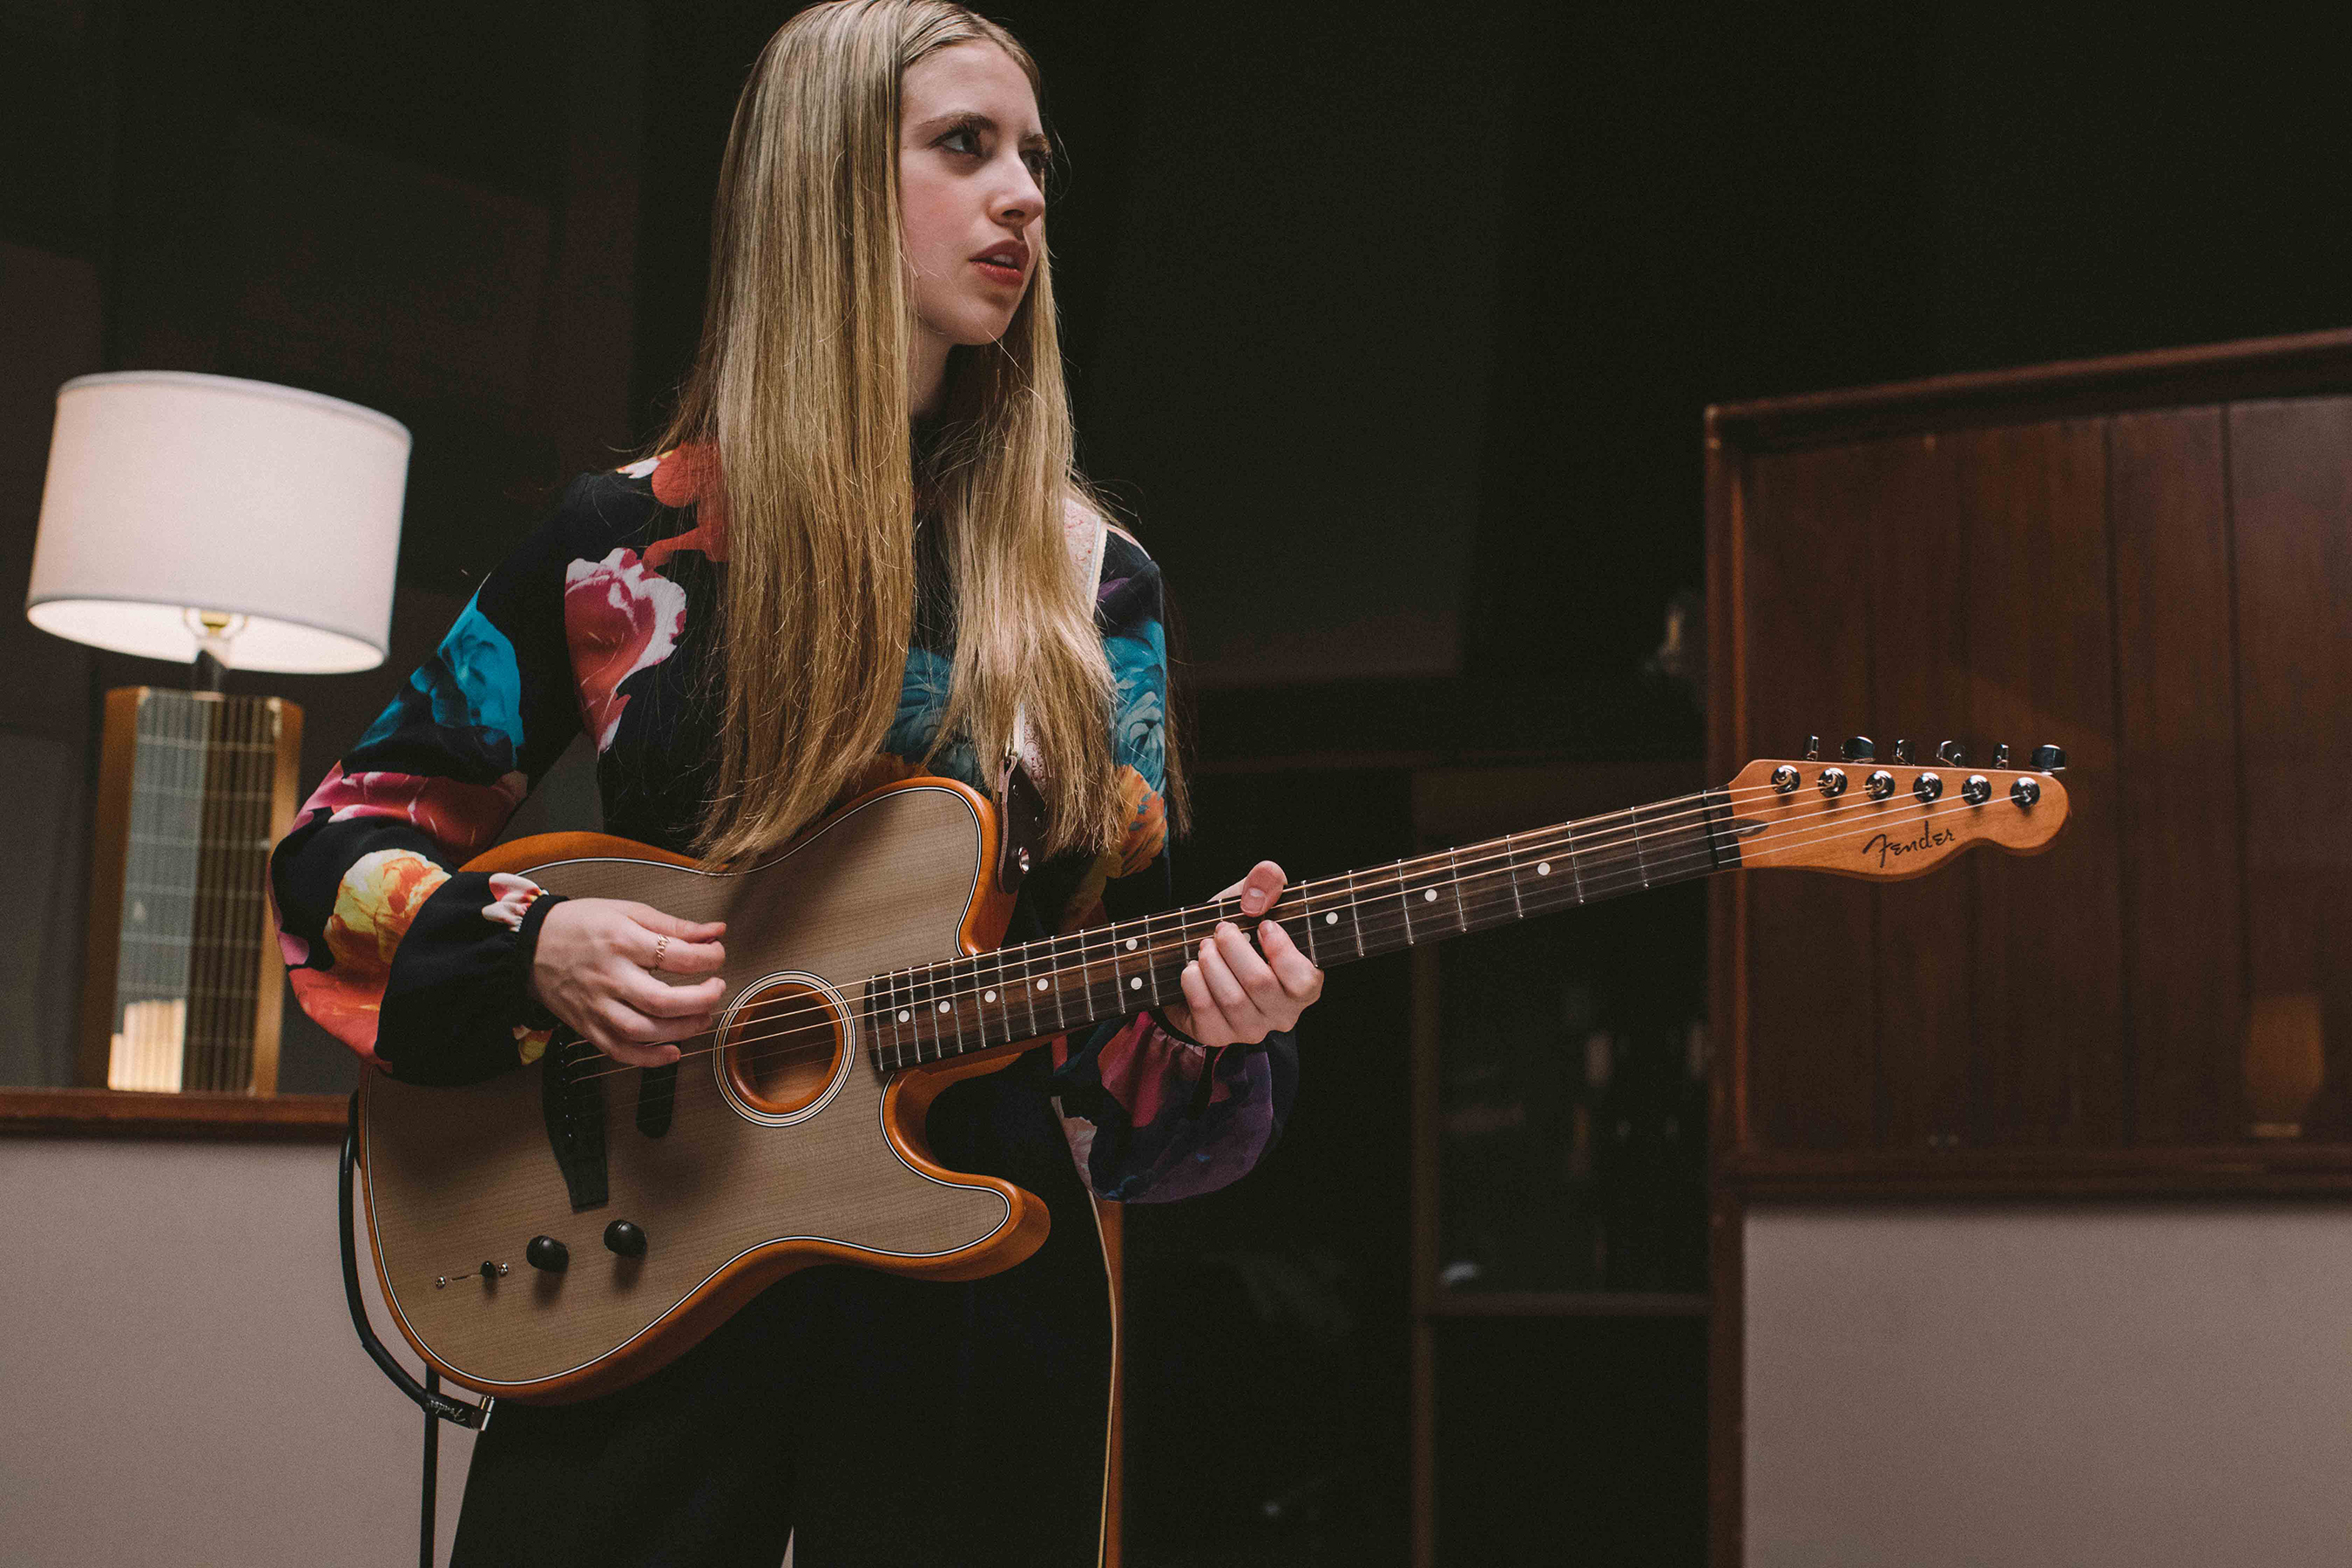 Ayla Tesler-Mabe with American Acoustasonic Telecaster in Sonic Grey